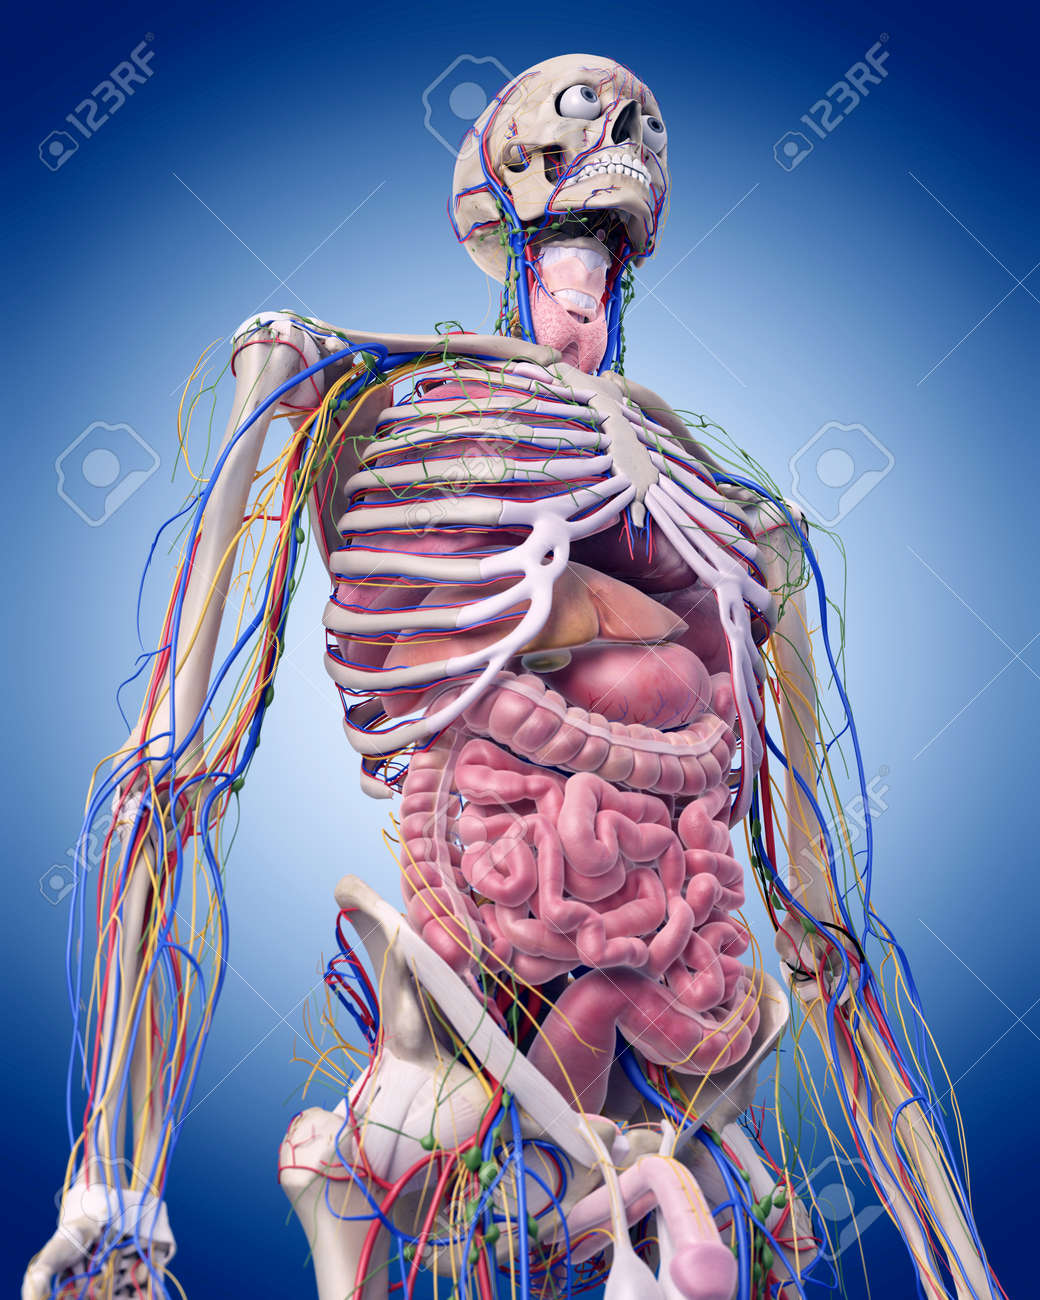 Human Anatomy Stock Photos Royalty Free Human Anatomy Images